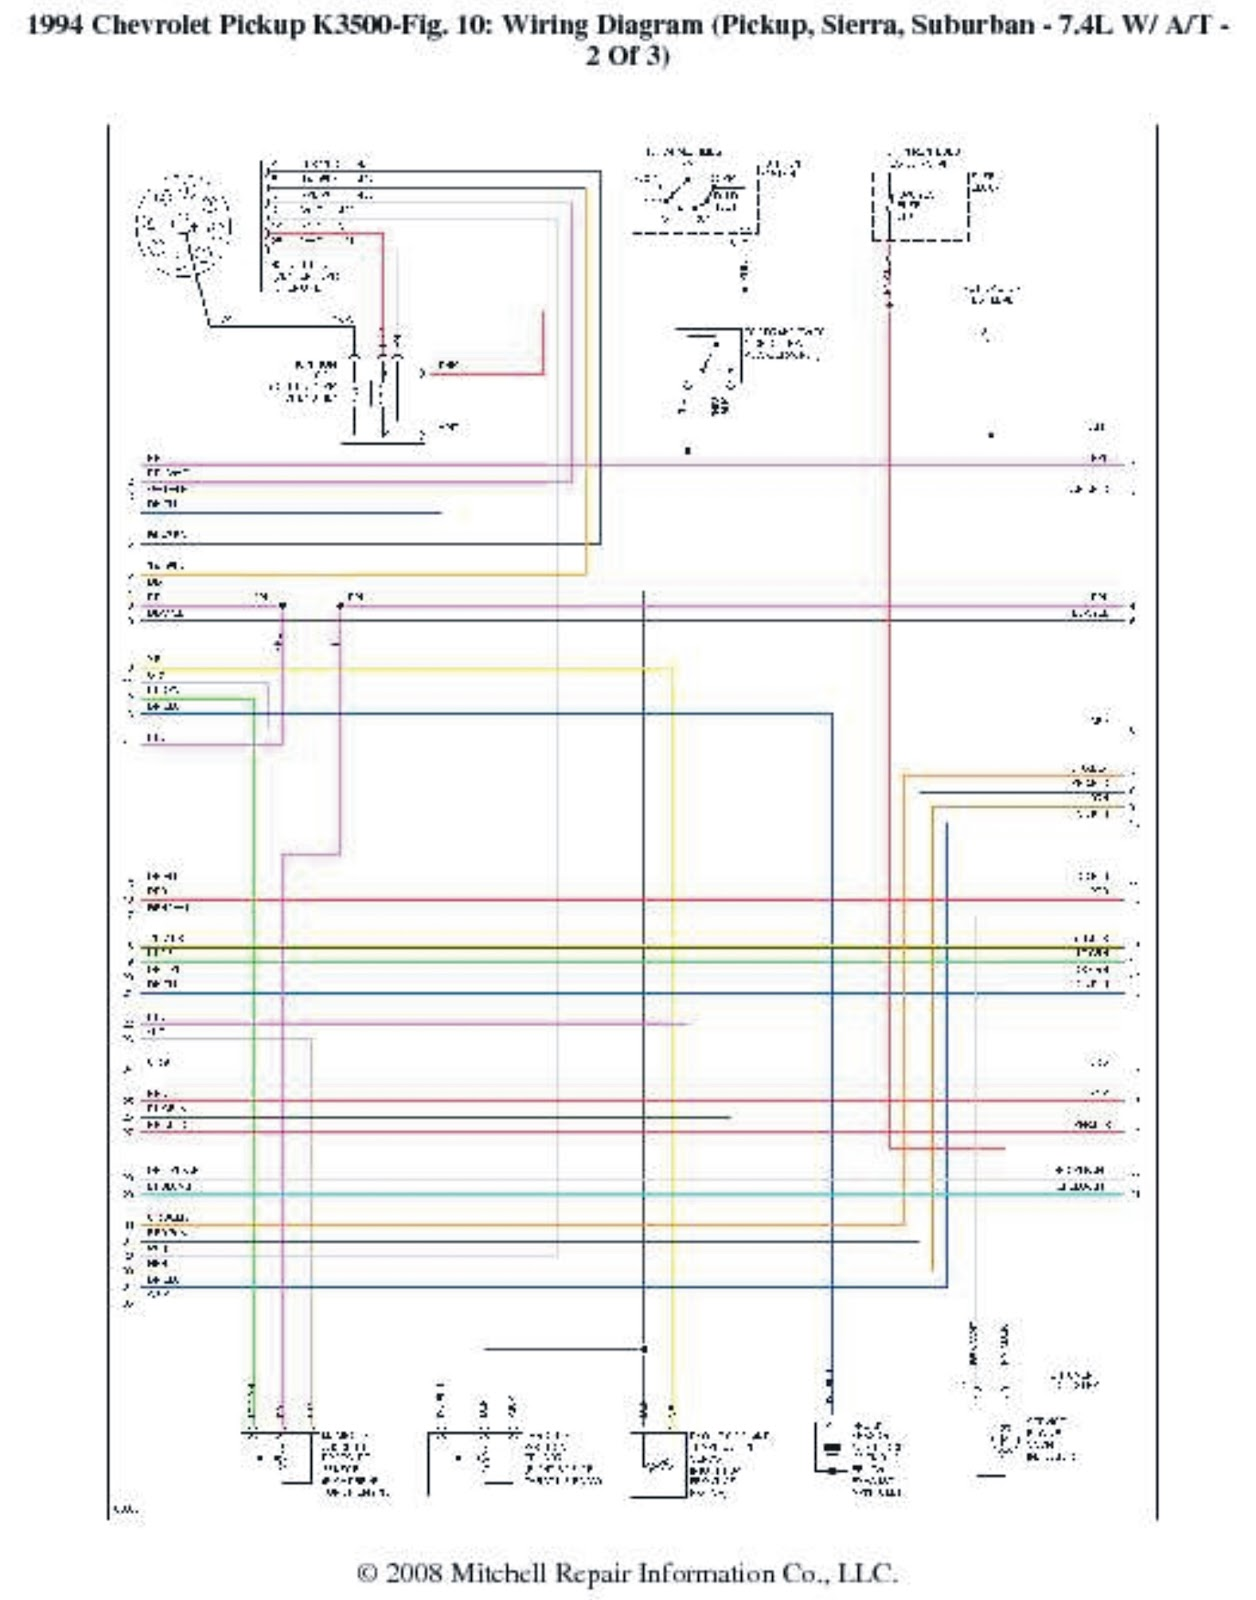 hight resolution of 1994 audi s4 wiring diagram 27 wiring diagram images 1993 chevy 3500 wiring diagram 1993 chevy silverado wiring diagram